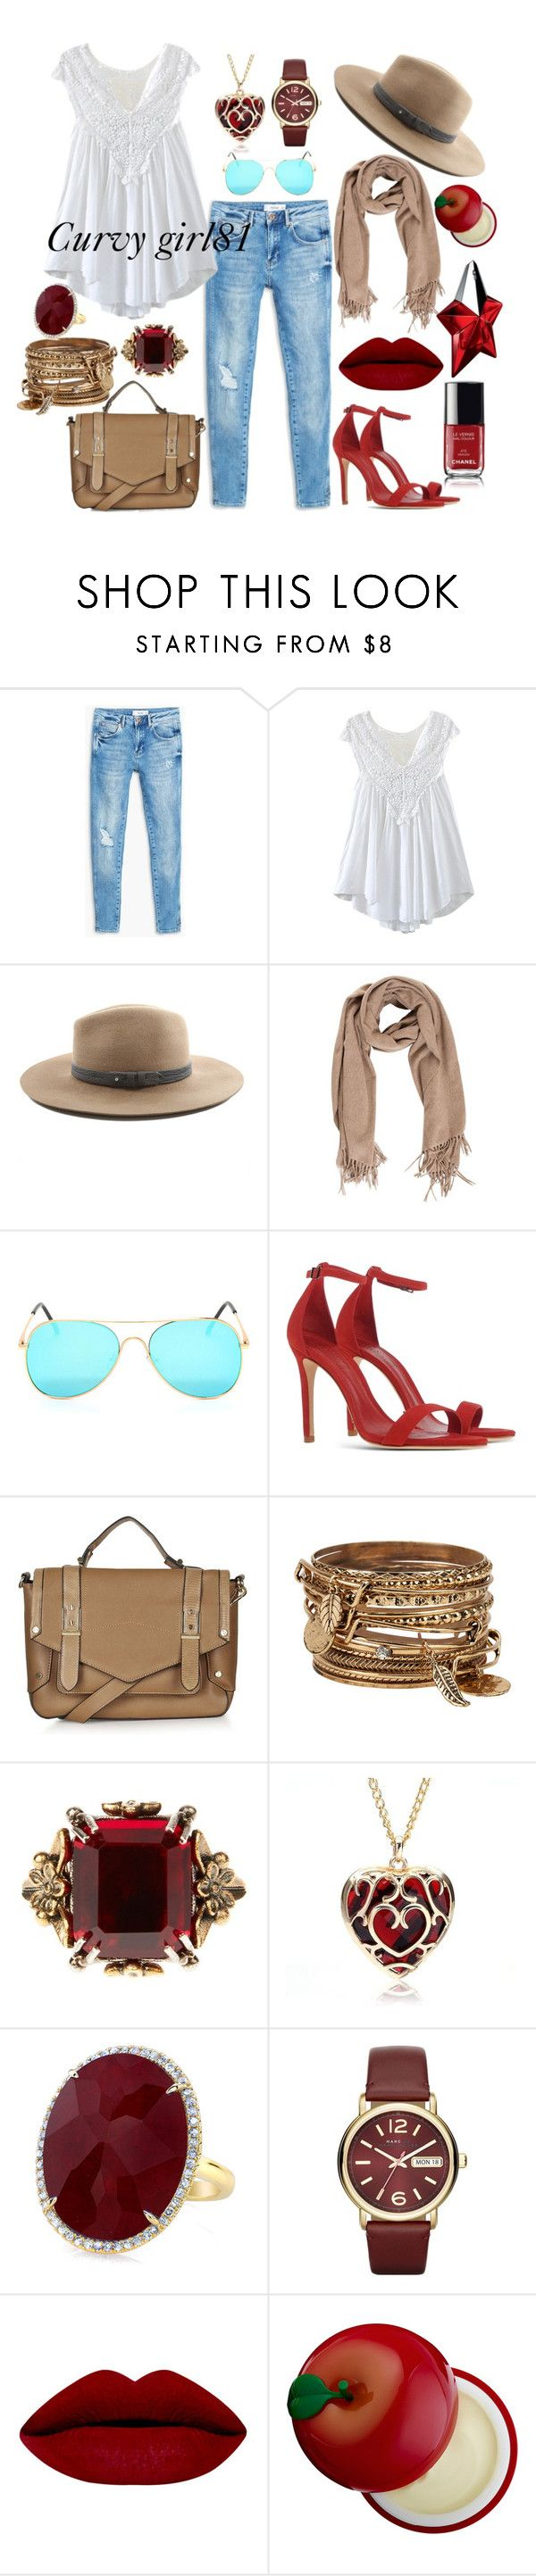 """Pretty red"" by pretty-girl81 on Polyvore featuring moda, MANGO, rag & bone, Schutz, Topshop, ALDO, Alexander McQueen, Marc by Marc Jacobs, Chanel e Tony Moly"